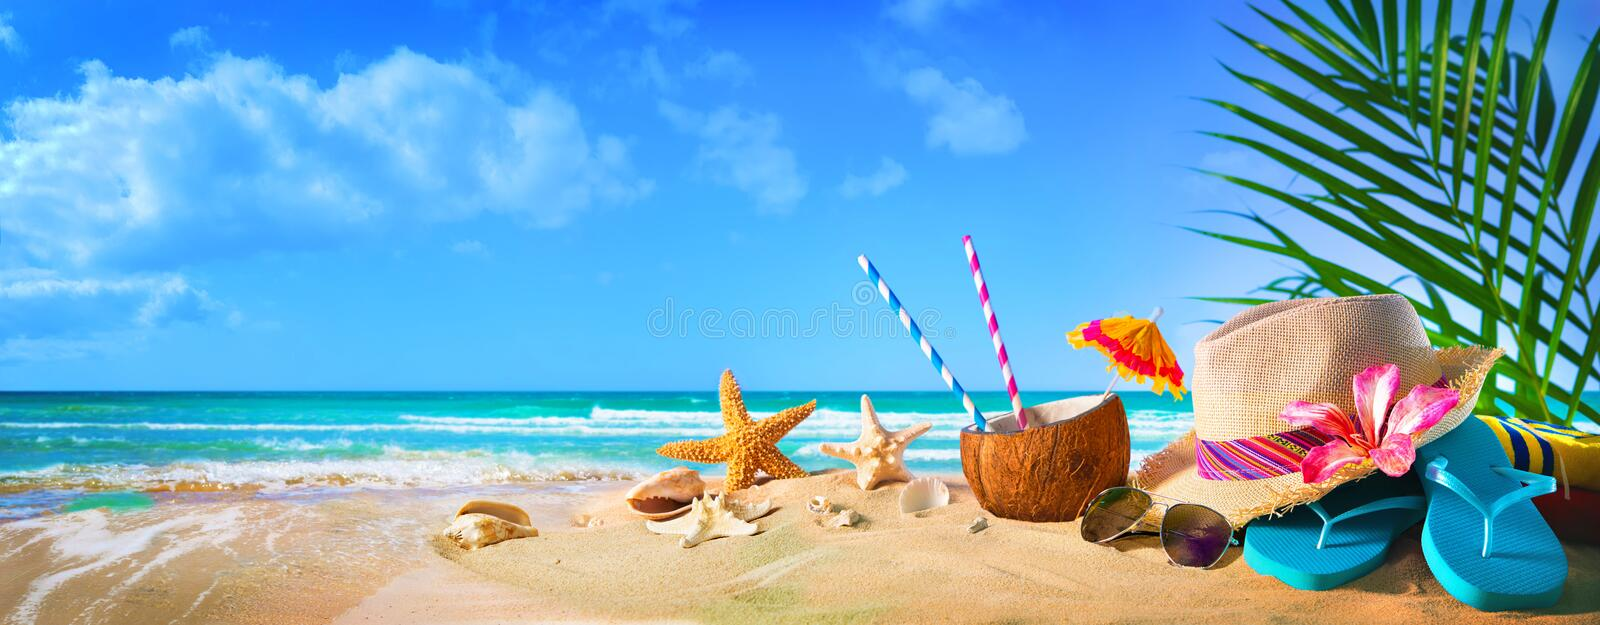 Straw hat and sunglasses on beach royalty free stock photos